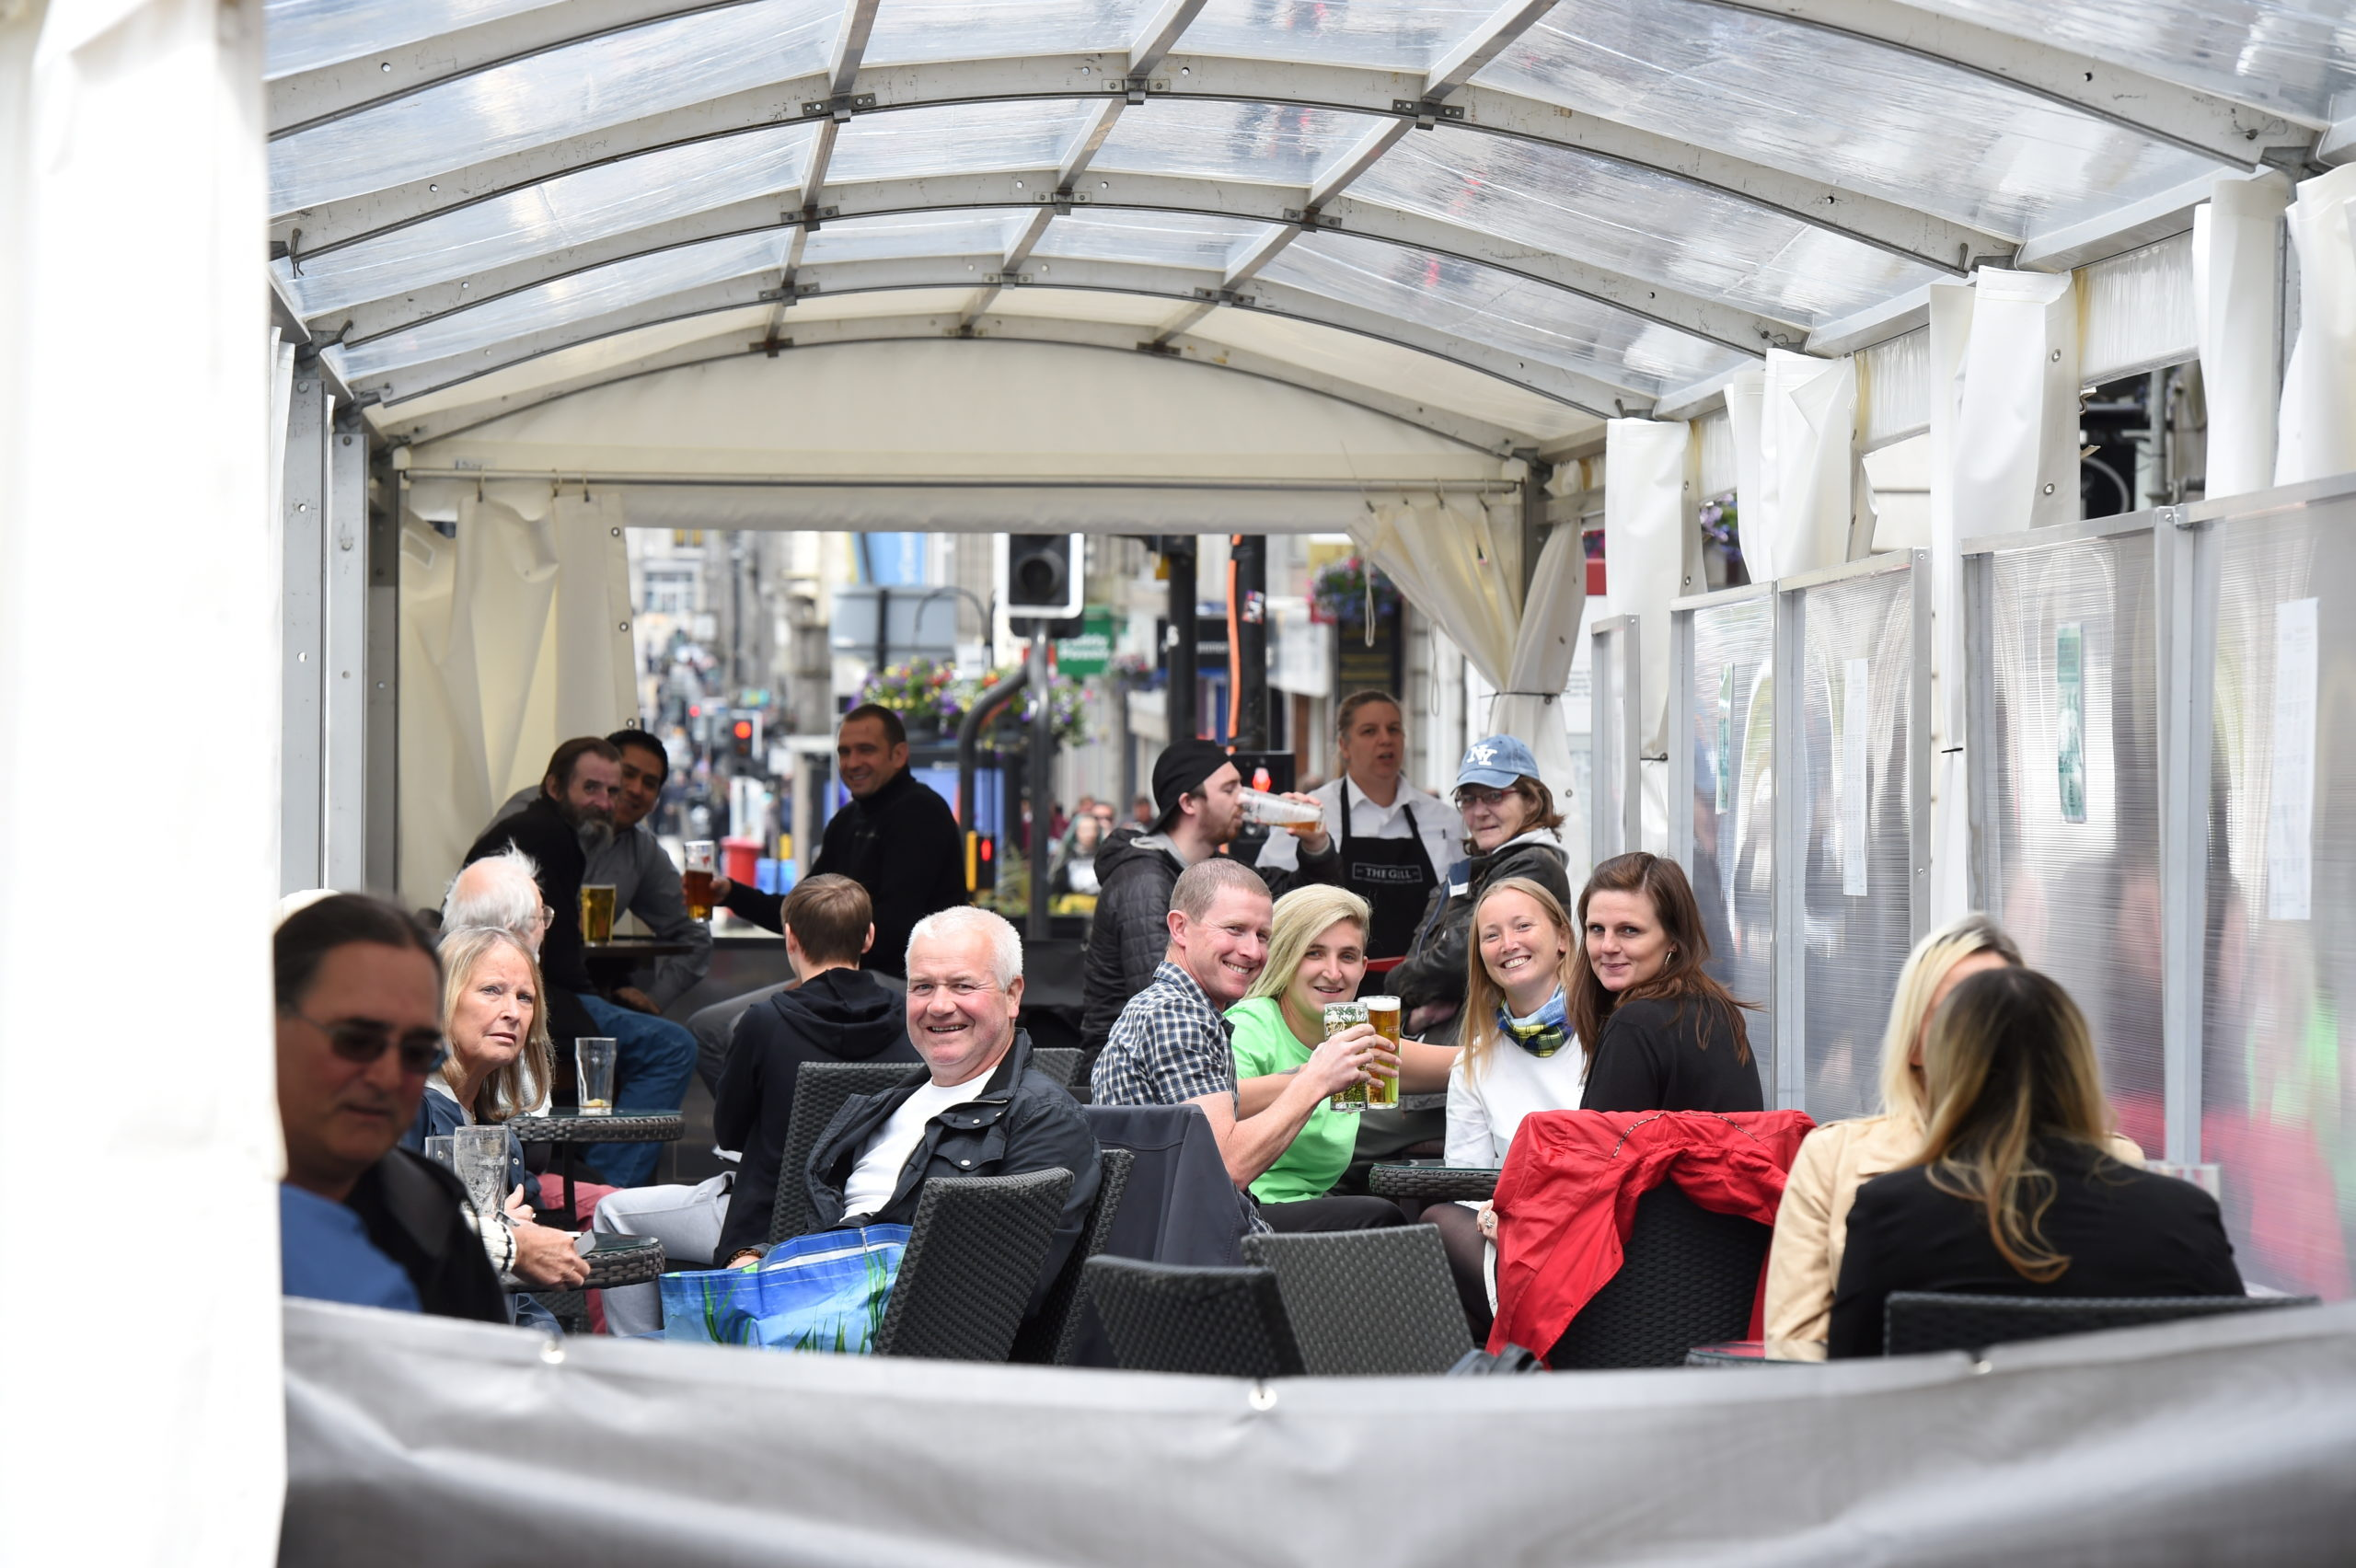 Occasional licenses have been used to facilitate beer tents in the city centre